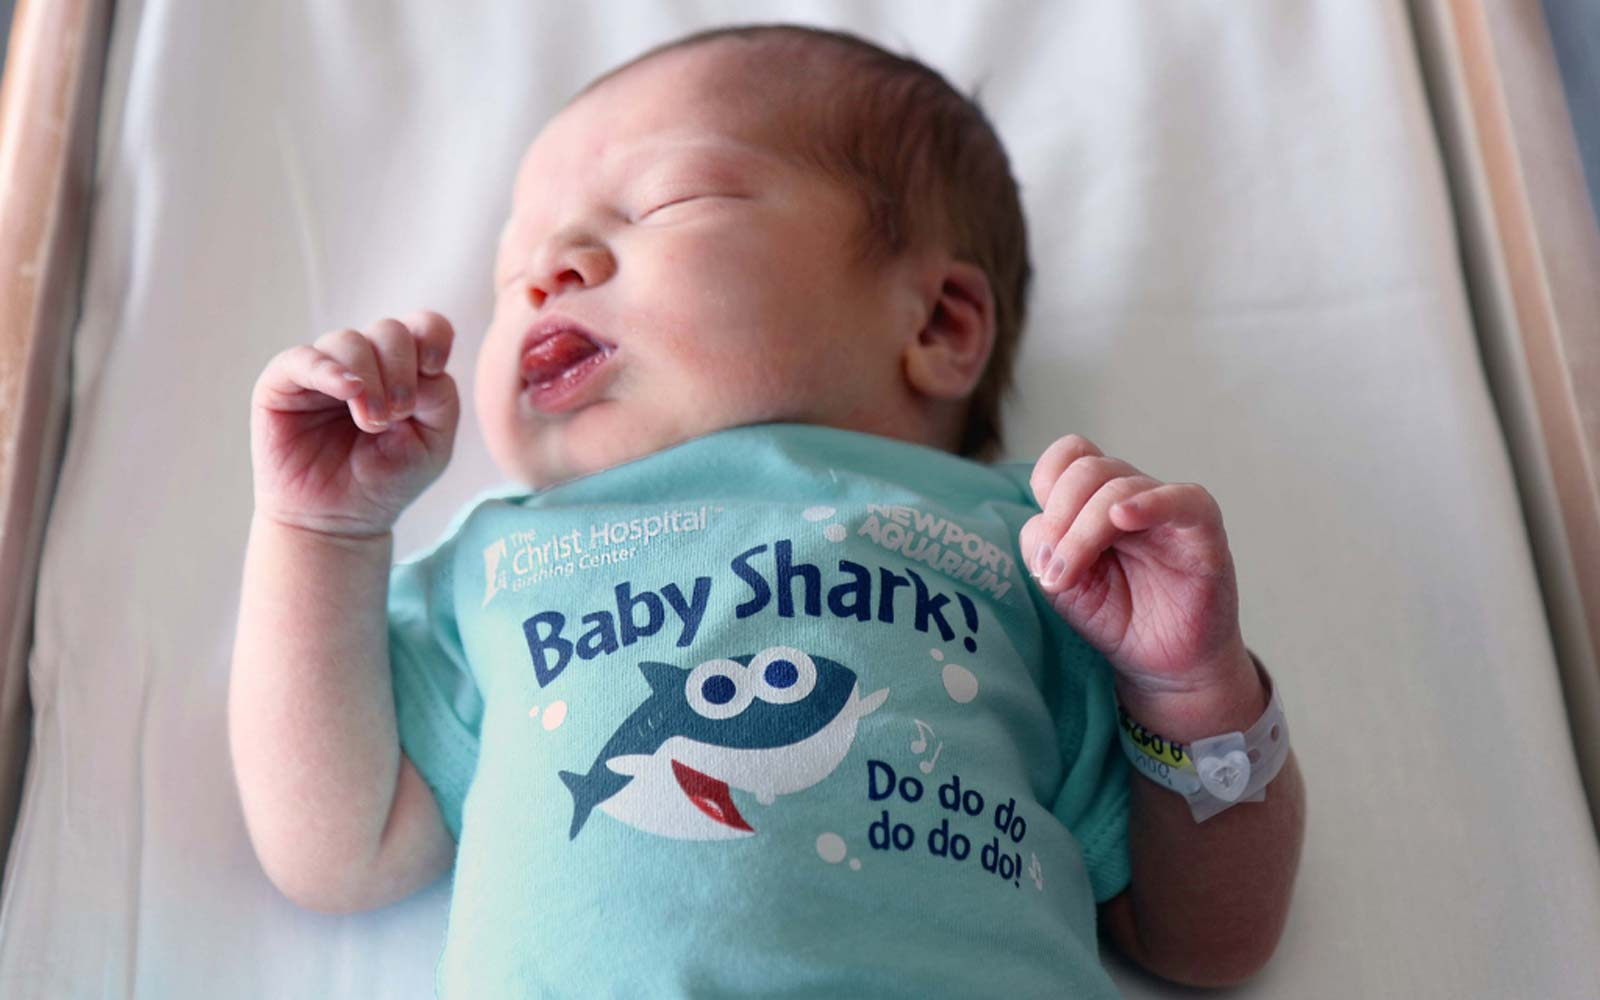 Infants Born During Shark Week Will Get Adorable 'Baby Shark' Onesies at a Cincinnati Hospital